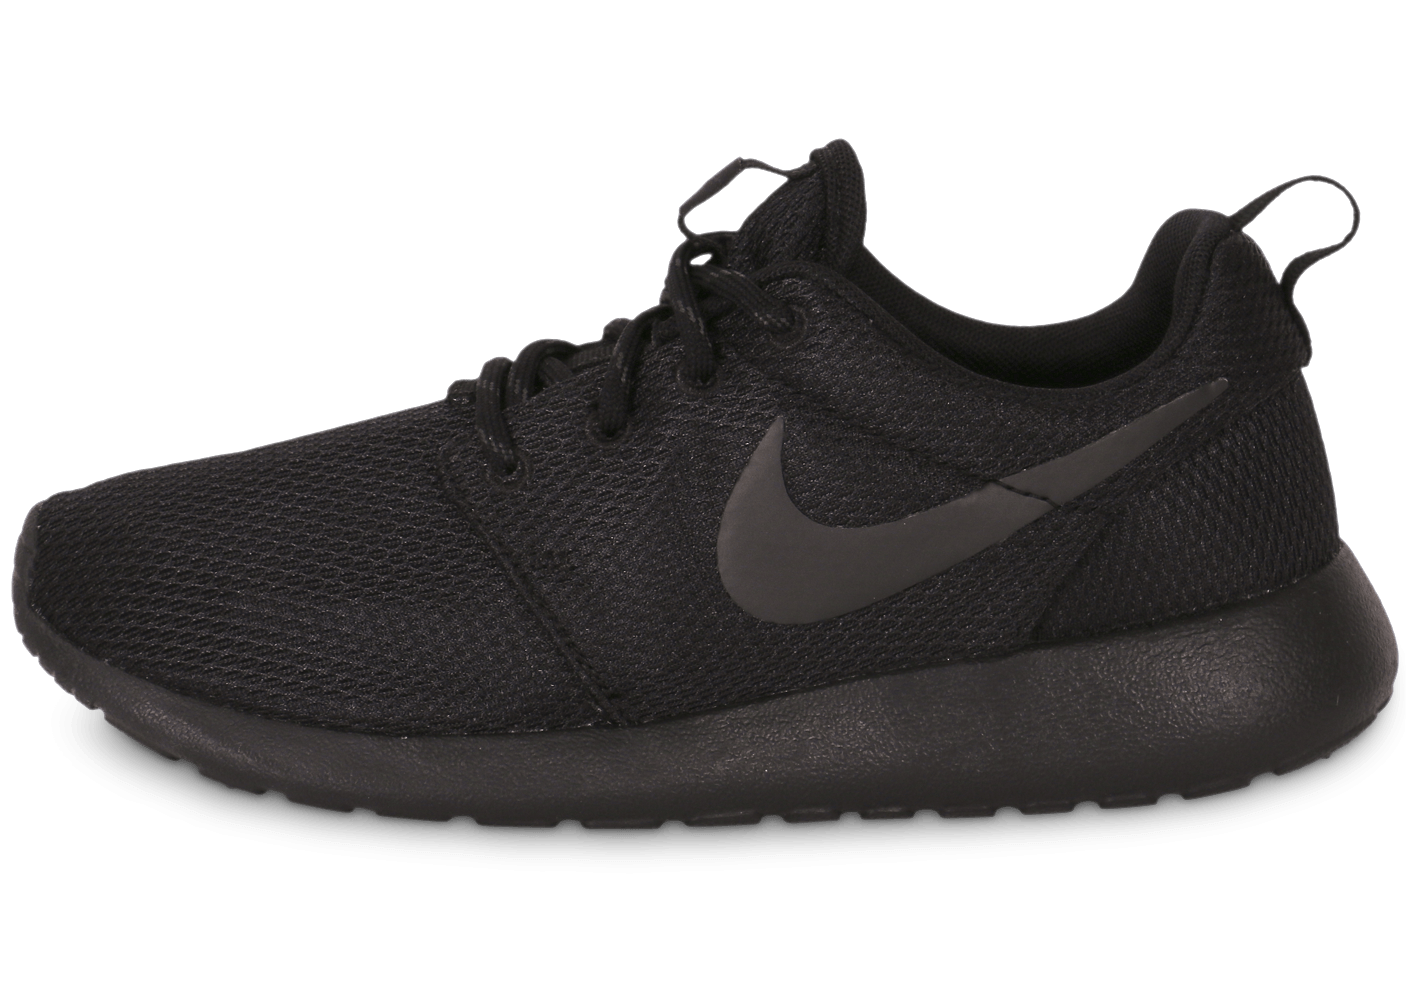 best sneakers fc597 f6d9f Nike Roshe Run Triple Black - Chaussures Chaussures - Chausp